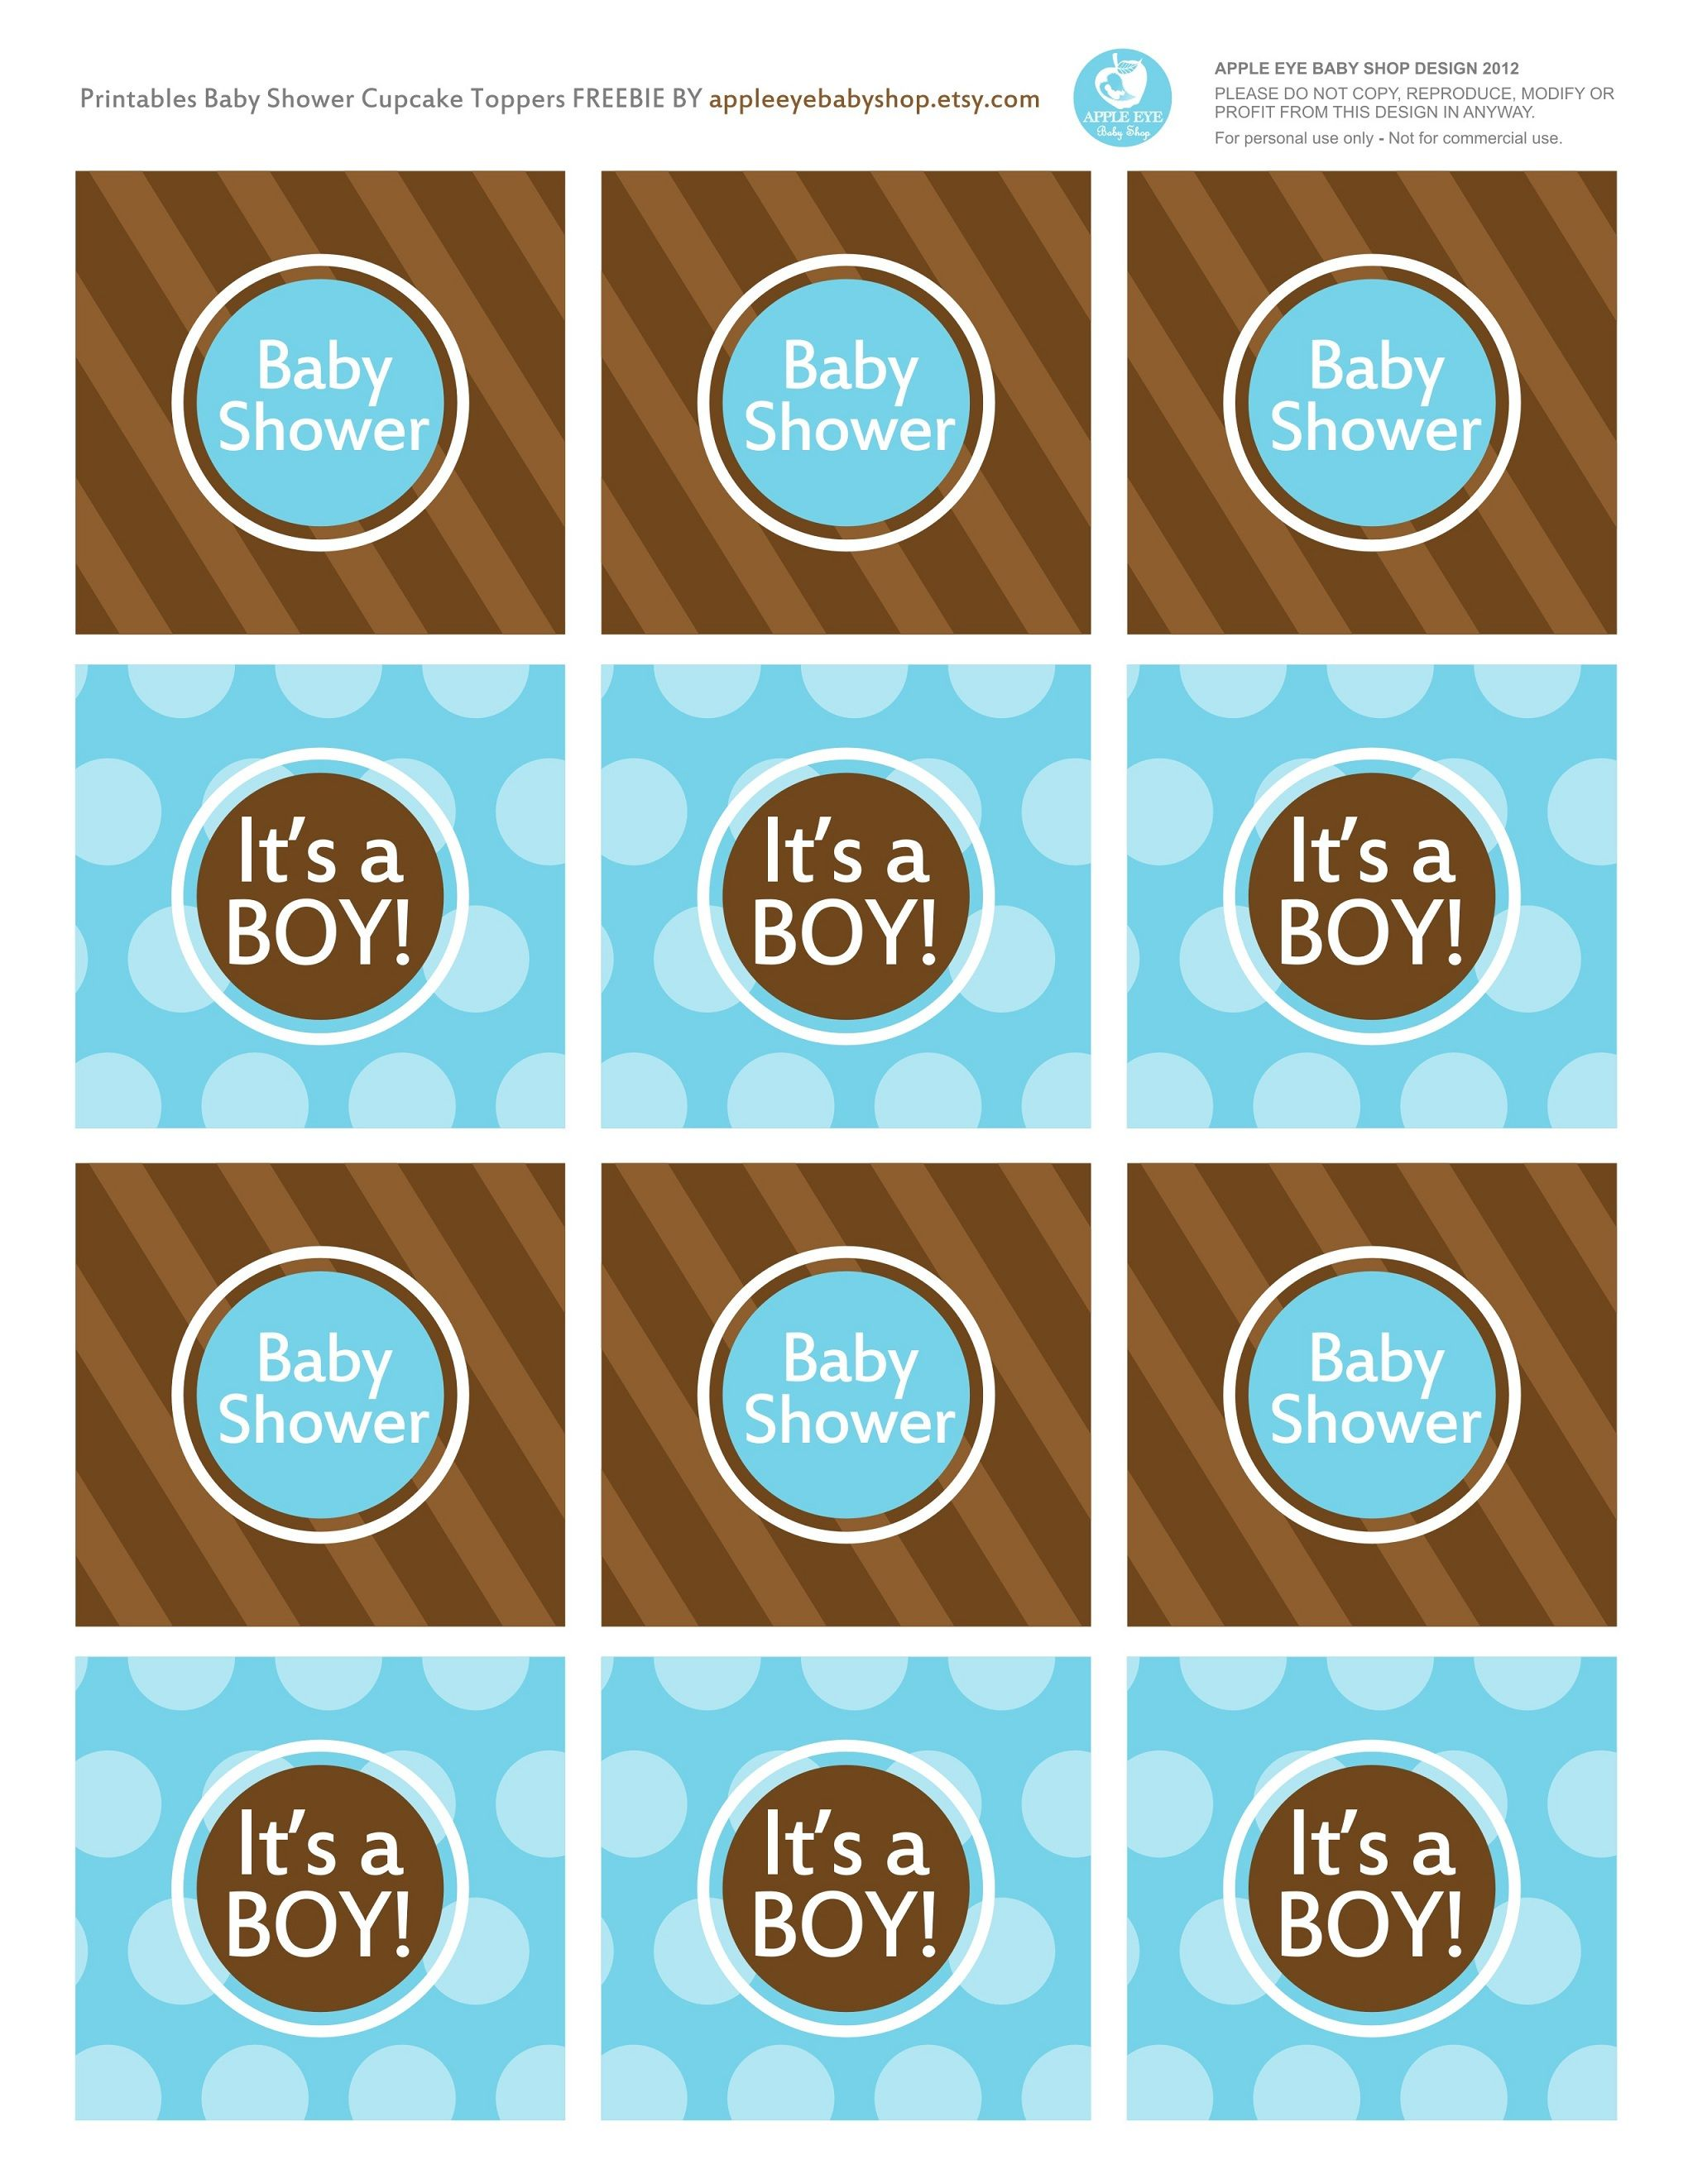 Baby Shower Free Printables It S A Boy Cupcake Toppers Blue And Brown Polka Dots Endless